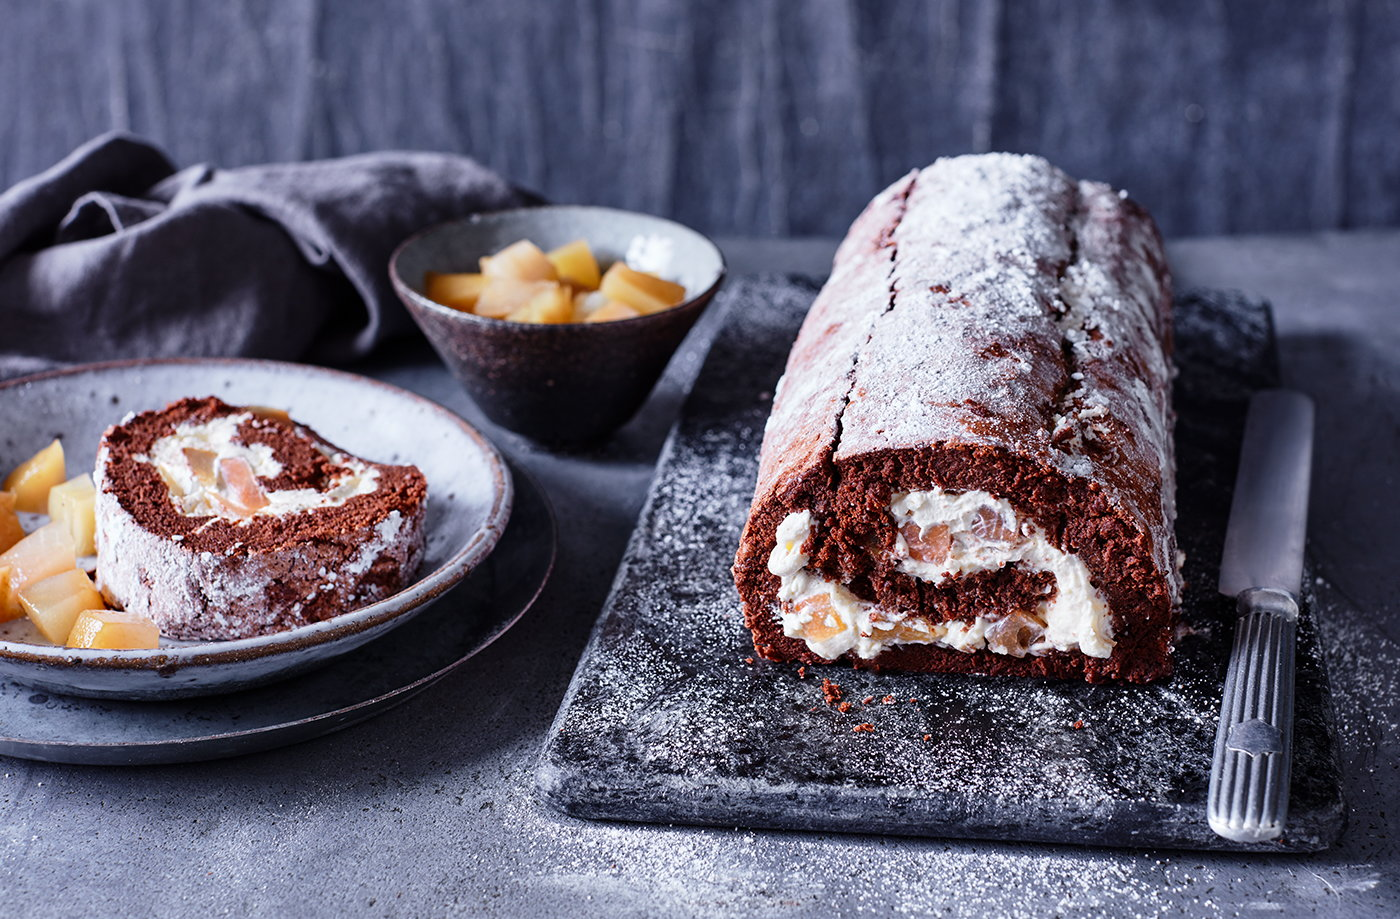 Pear and whisky chocolate roulade recipe